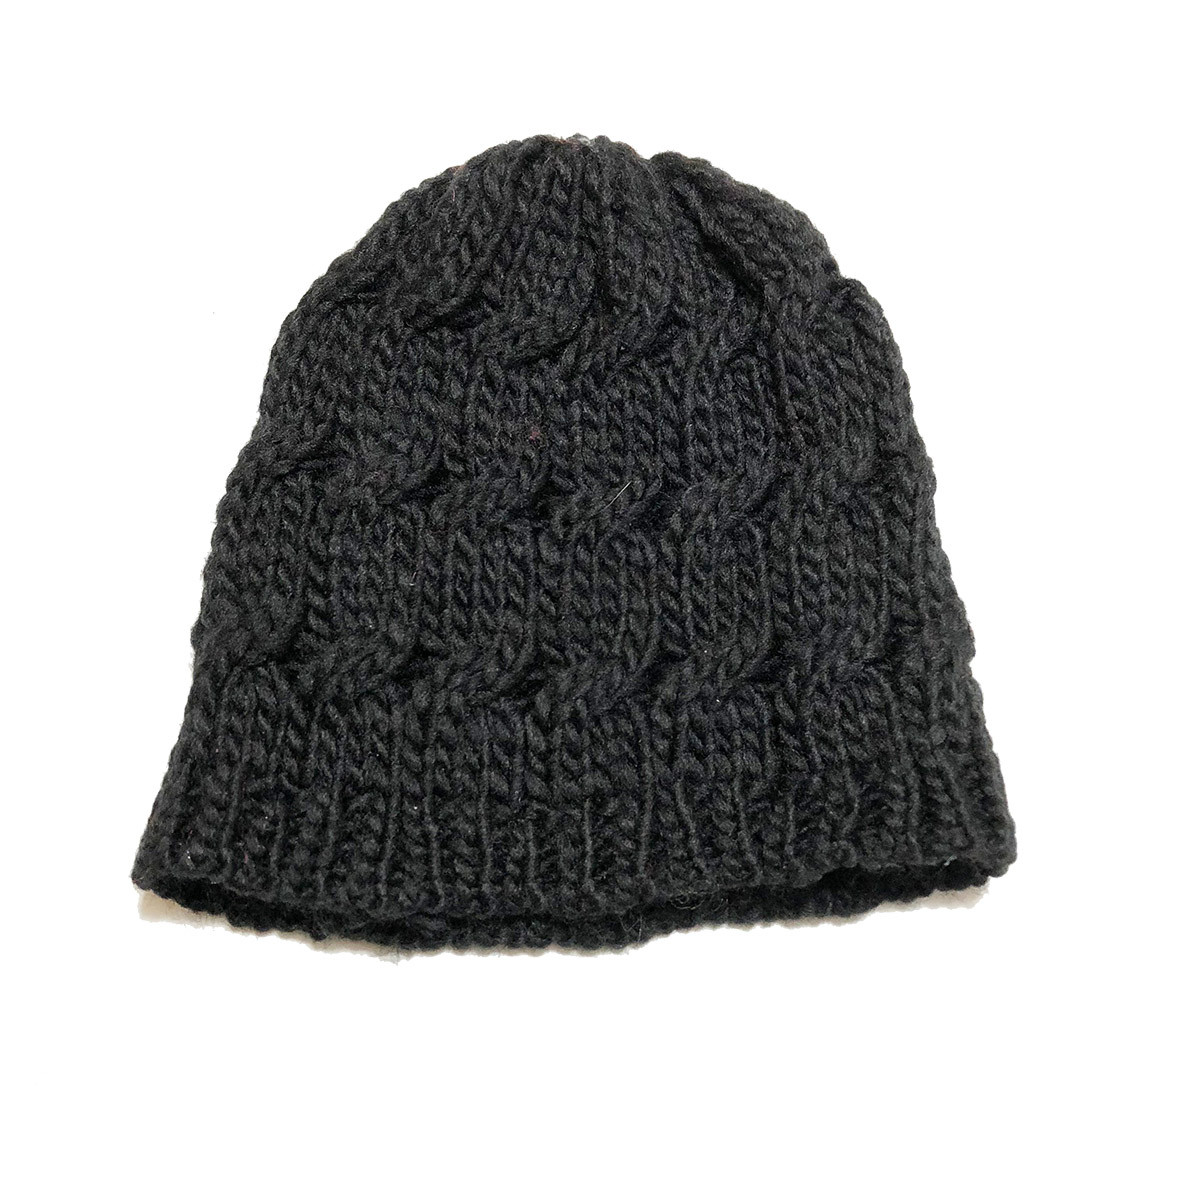 Black Infant Toddler Knit Hat - The Natural Hair Shop 7e3a03d0268